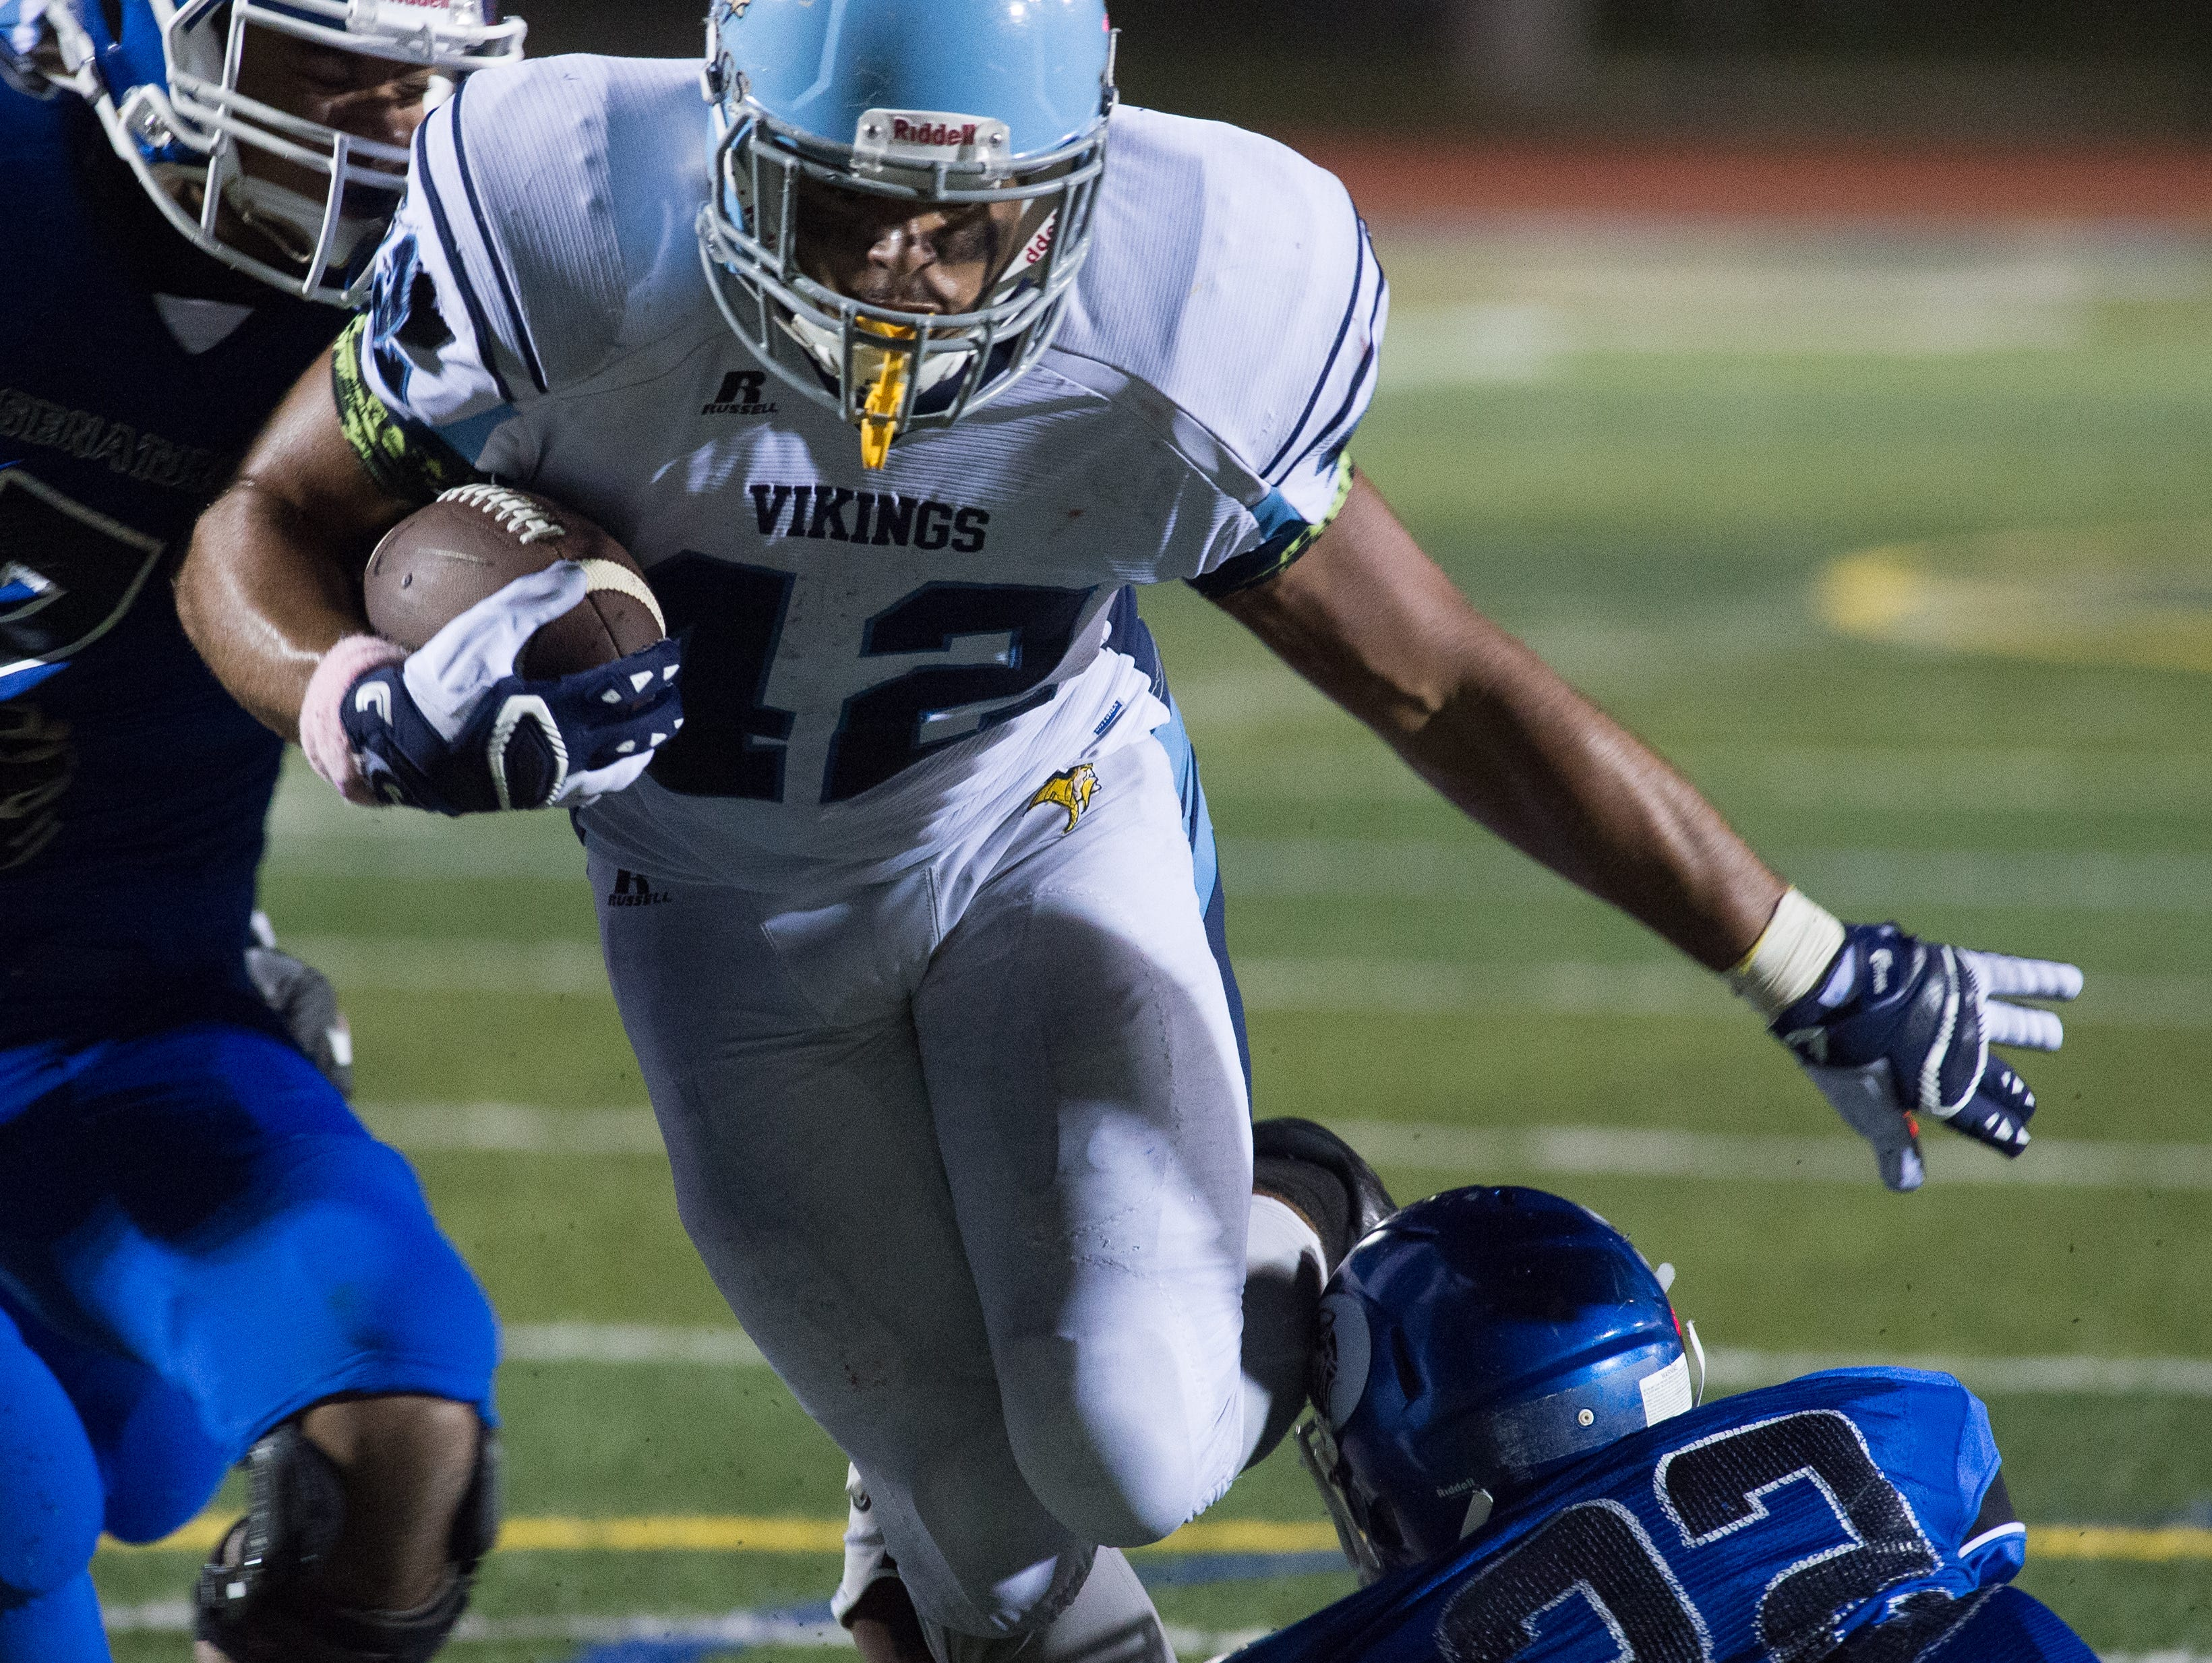 Cape Henlopen's Kolbi Wright (42) runs into the end zone for a touchdown in their 29-14 win over Dover.